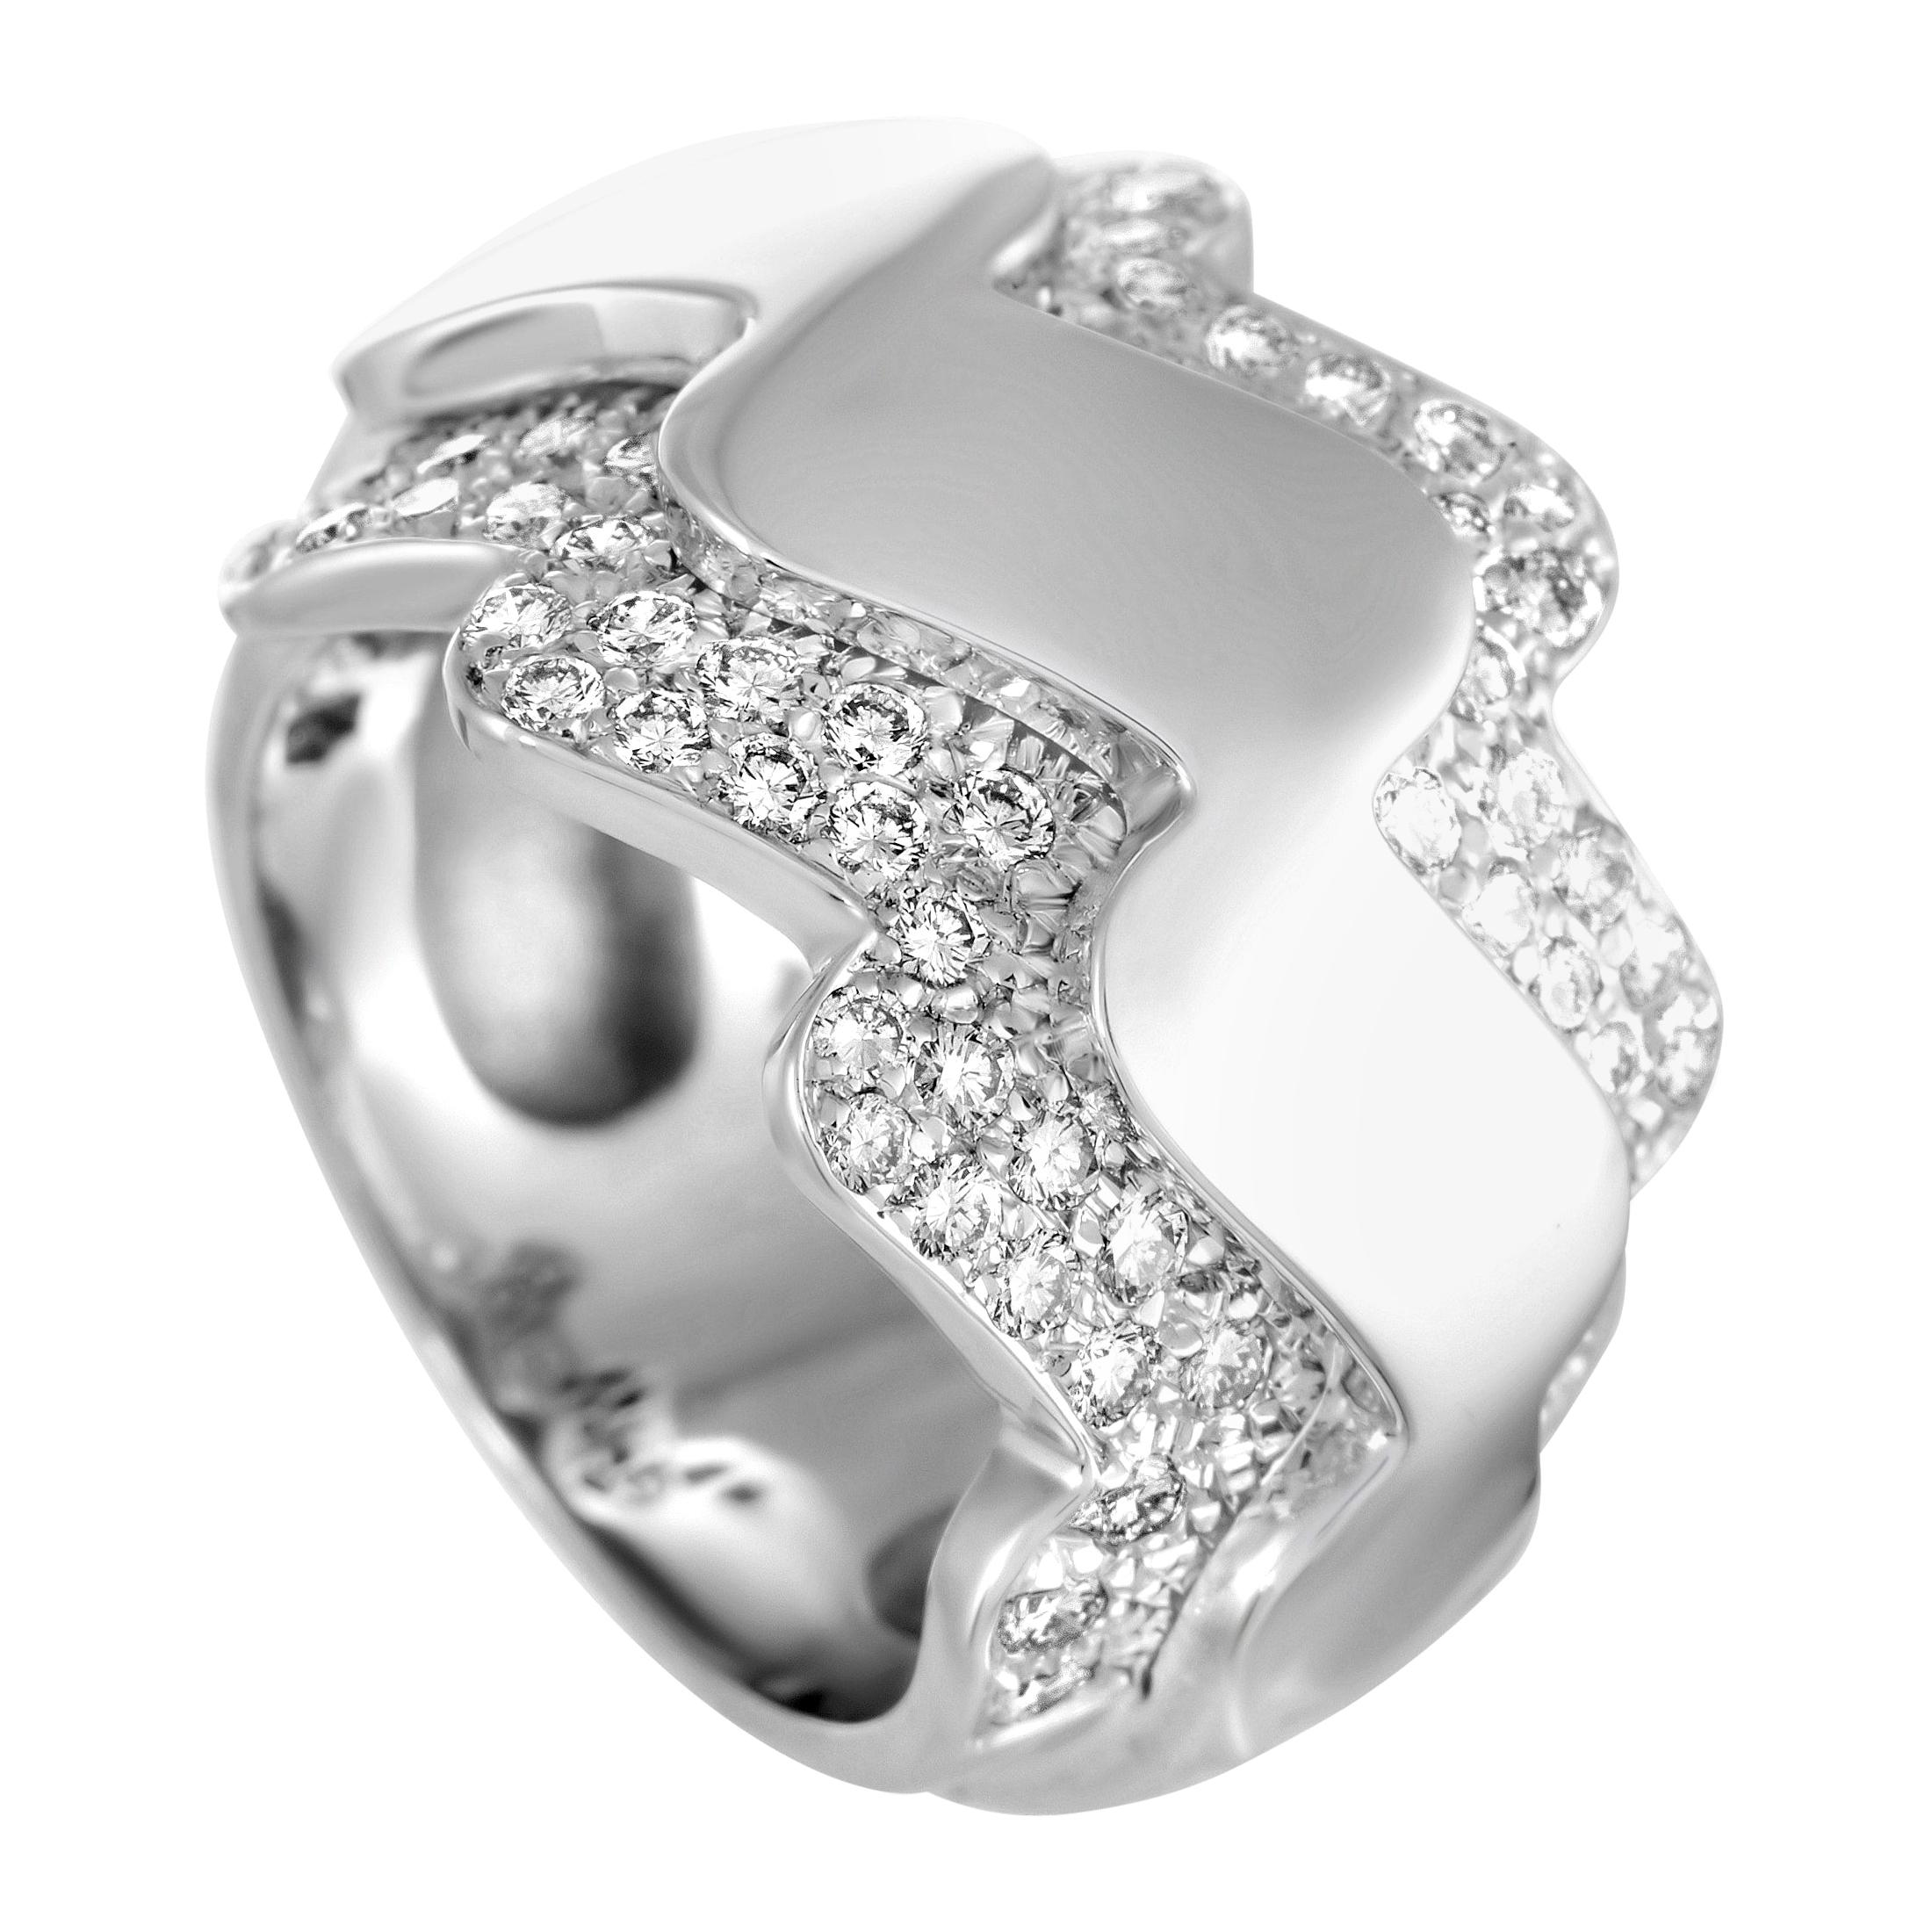 Van Cleef & Arpels Diamond Wave White Gold Band Ring